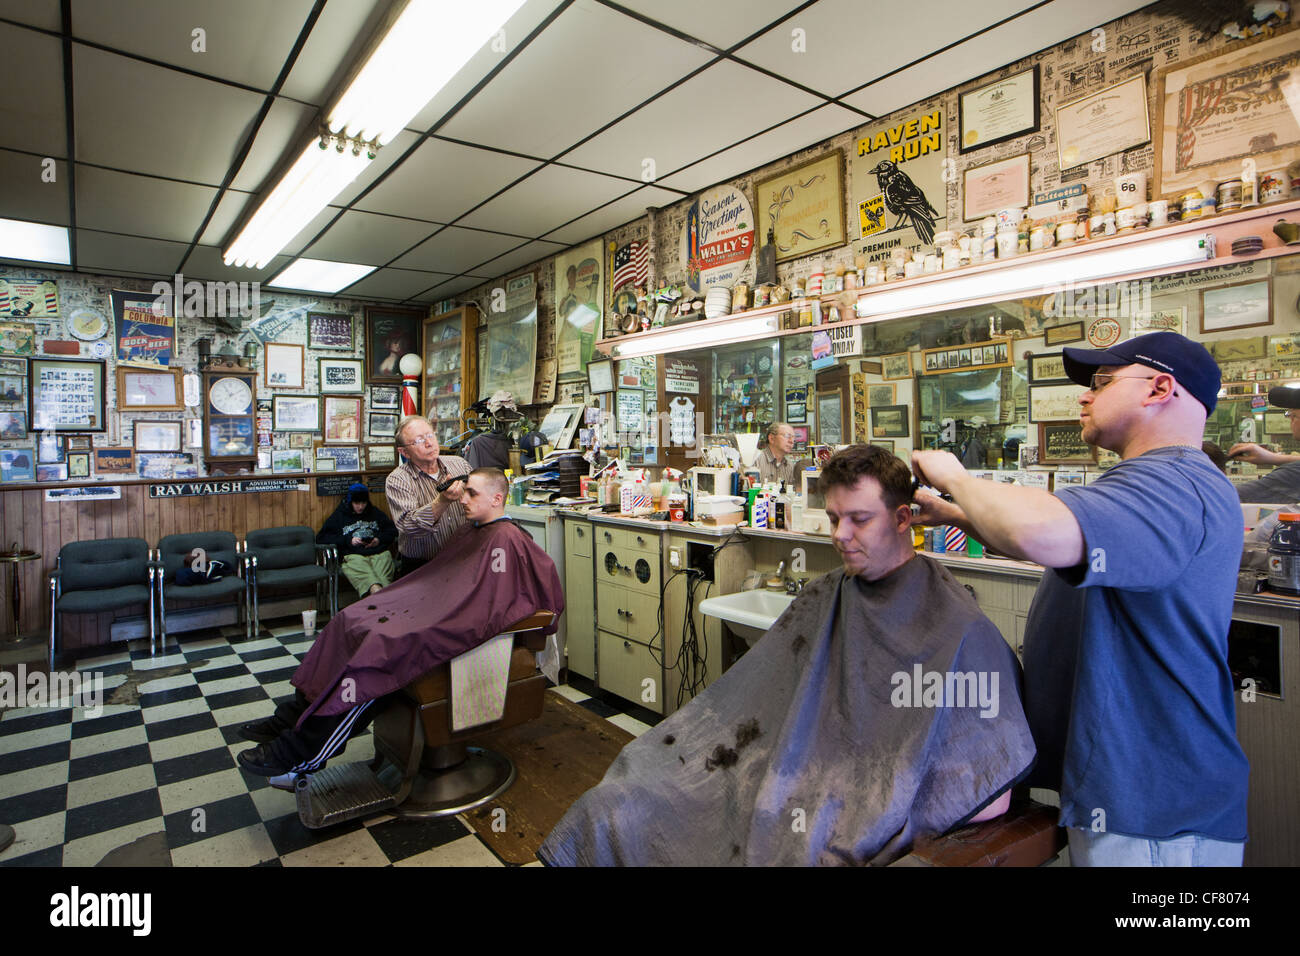 Barber shop in Shenandoah, Pennsylvania Stock Photo